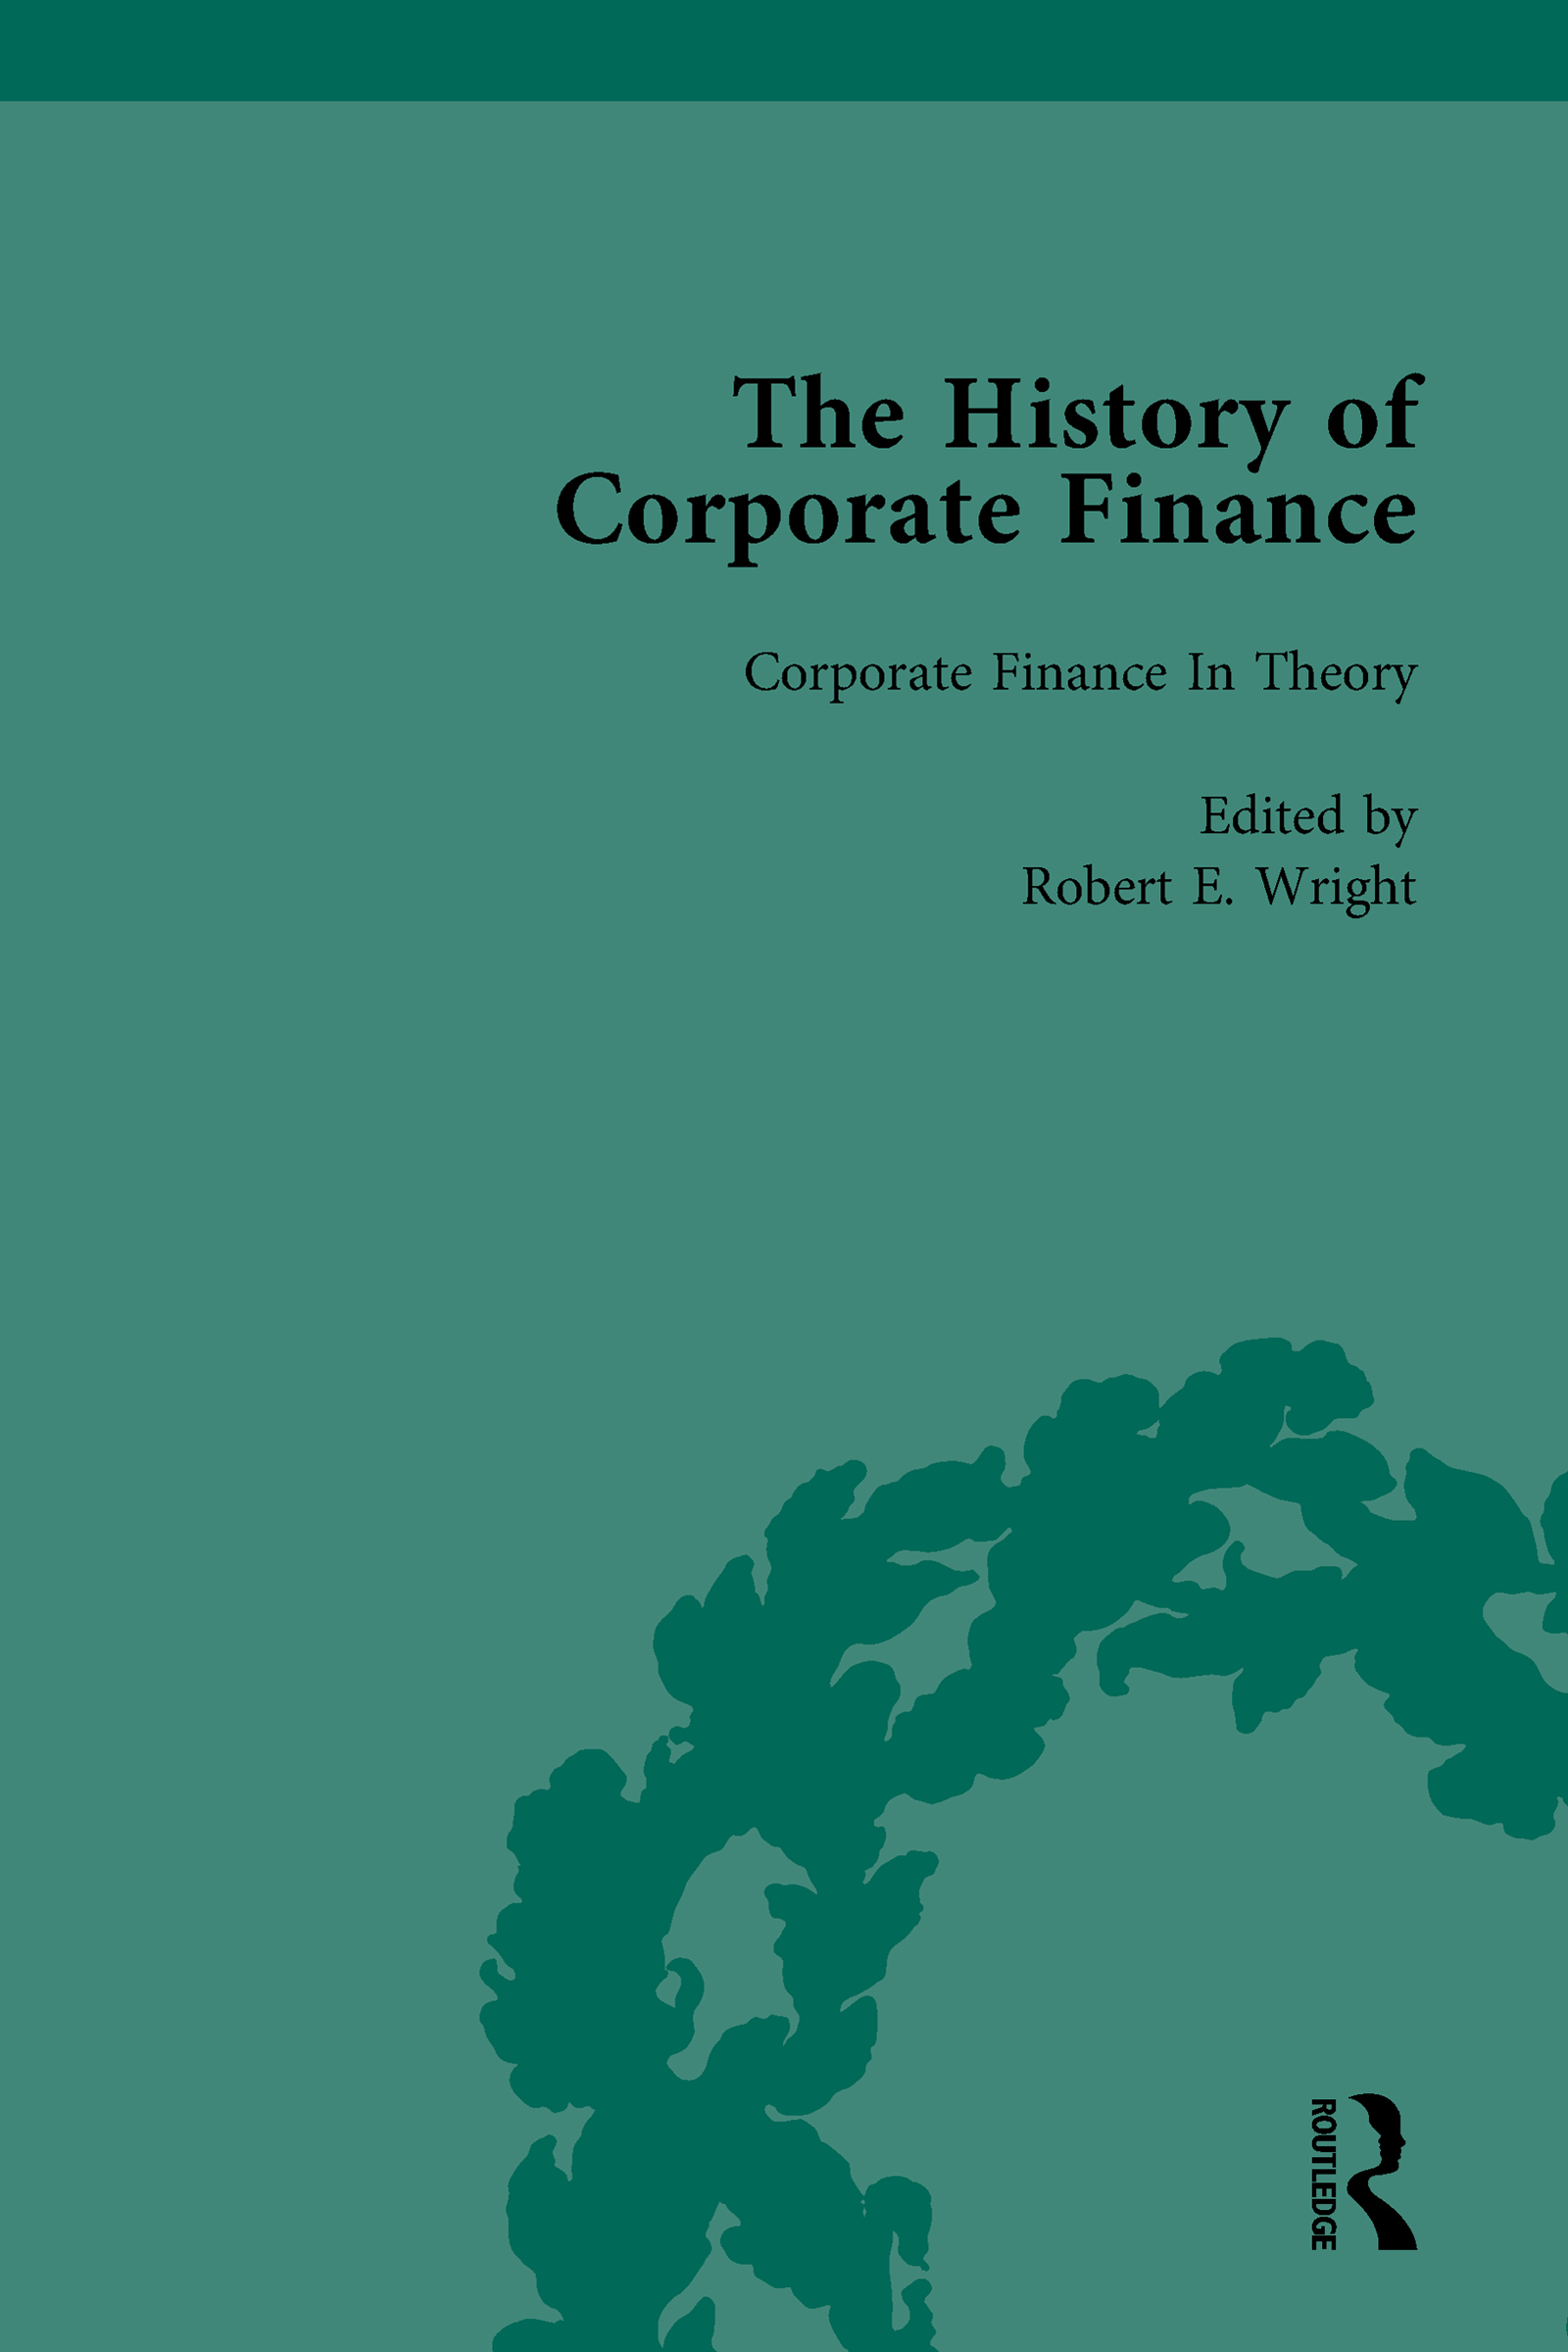 The History of Corporate Finance